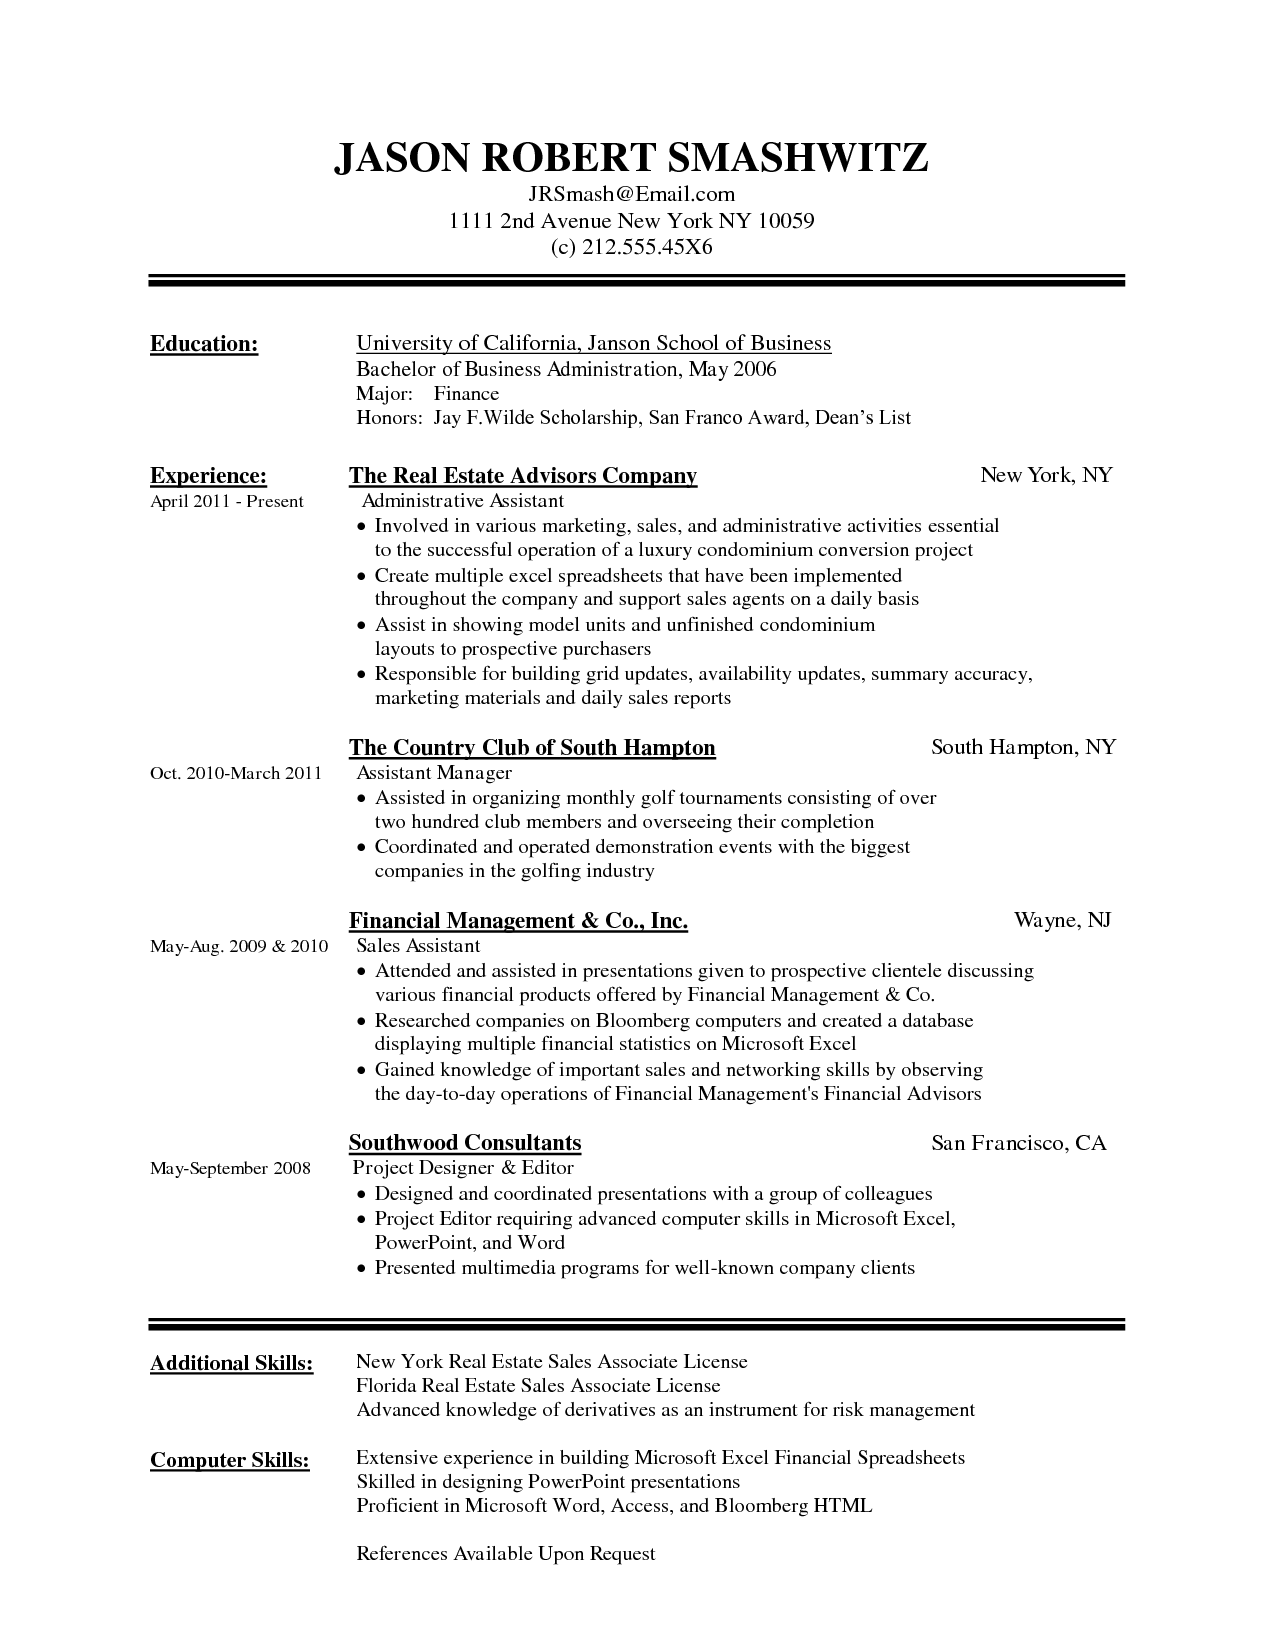 Template For Resume On Word Microsoft Word Resume Templates Task List Templates